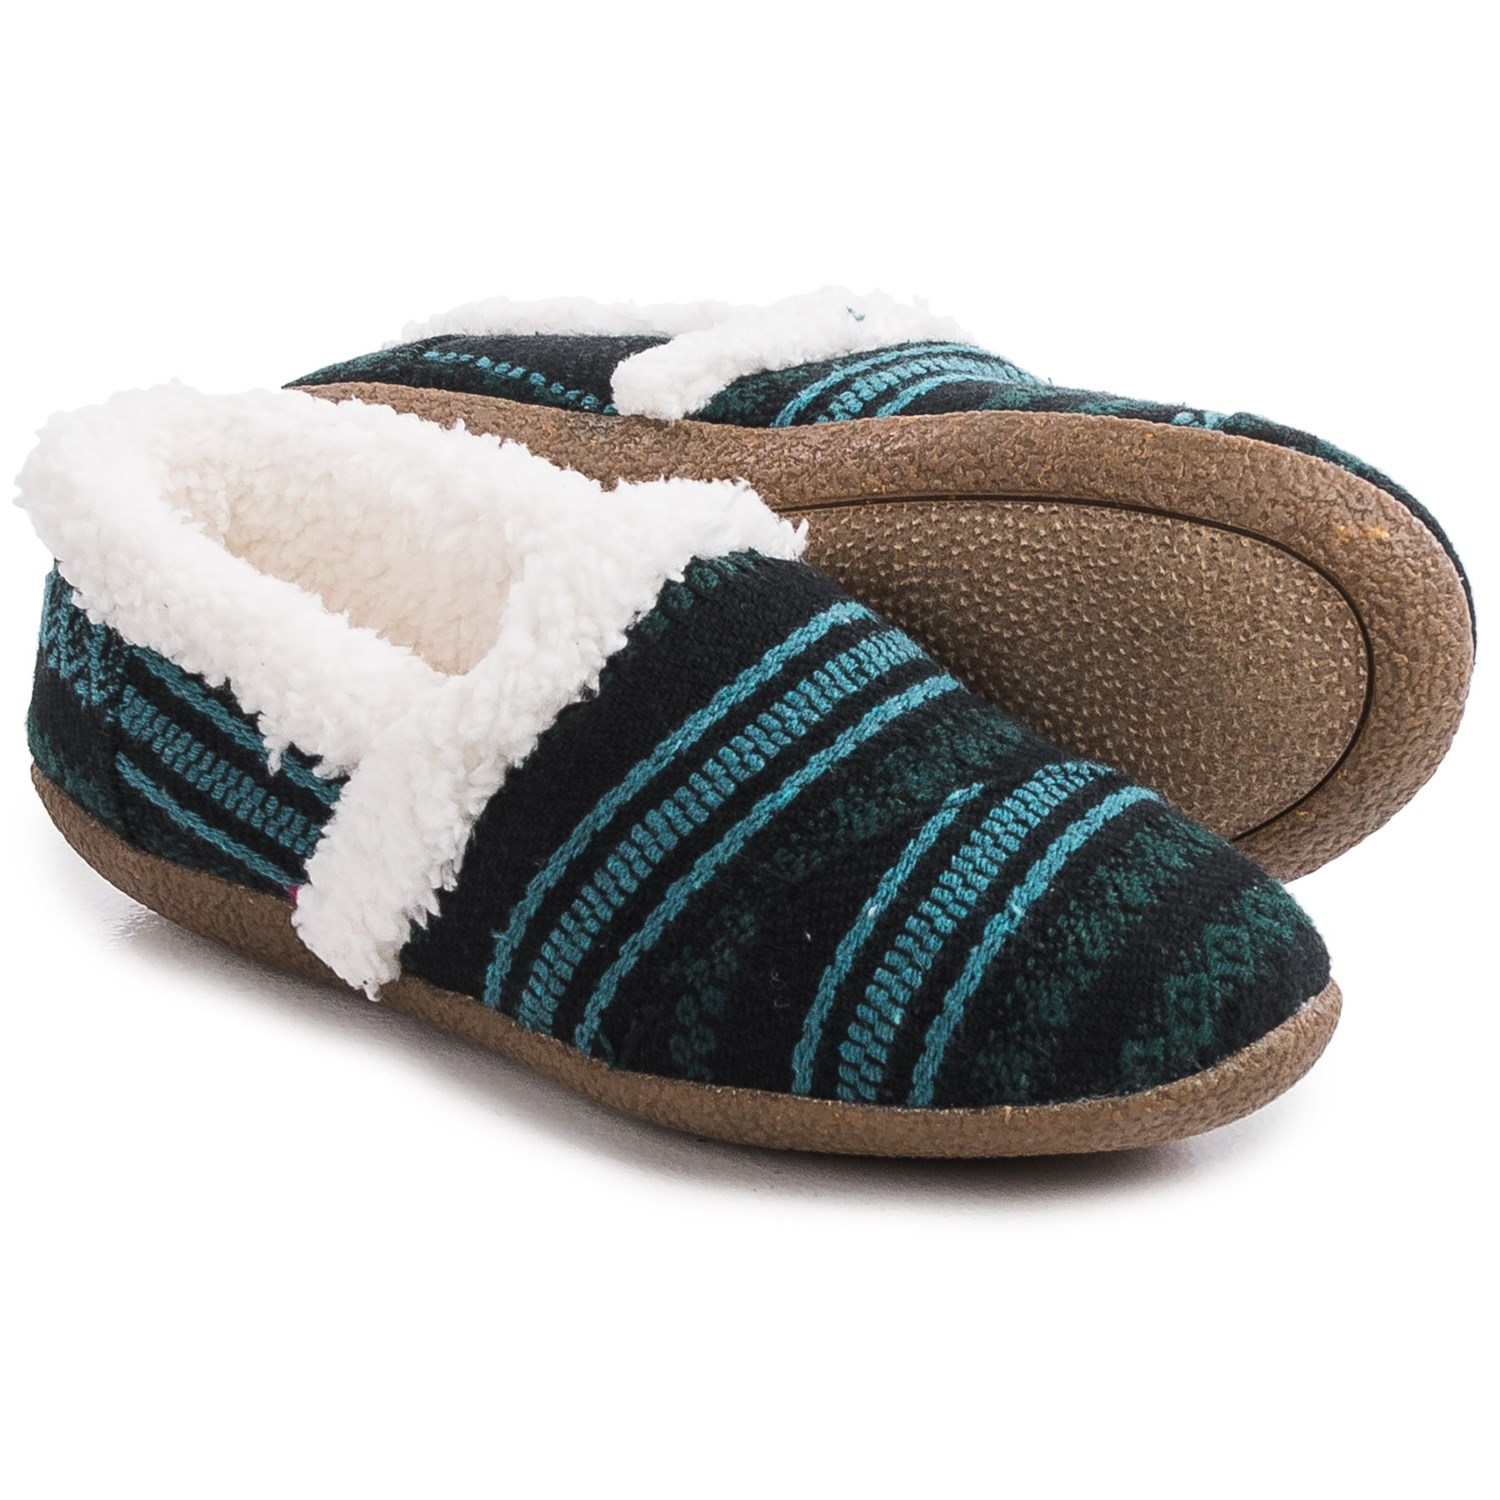 TOMS House Slippers (For Women)